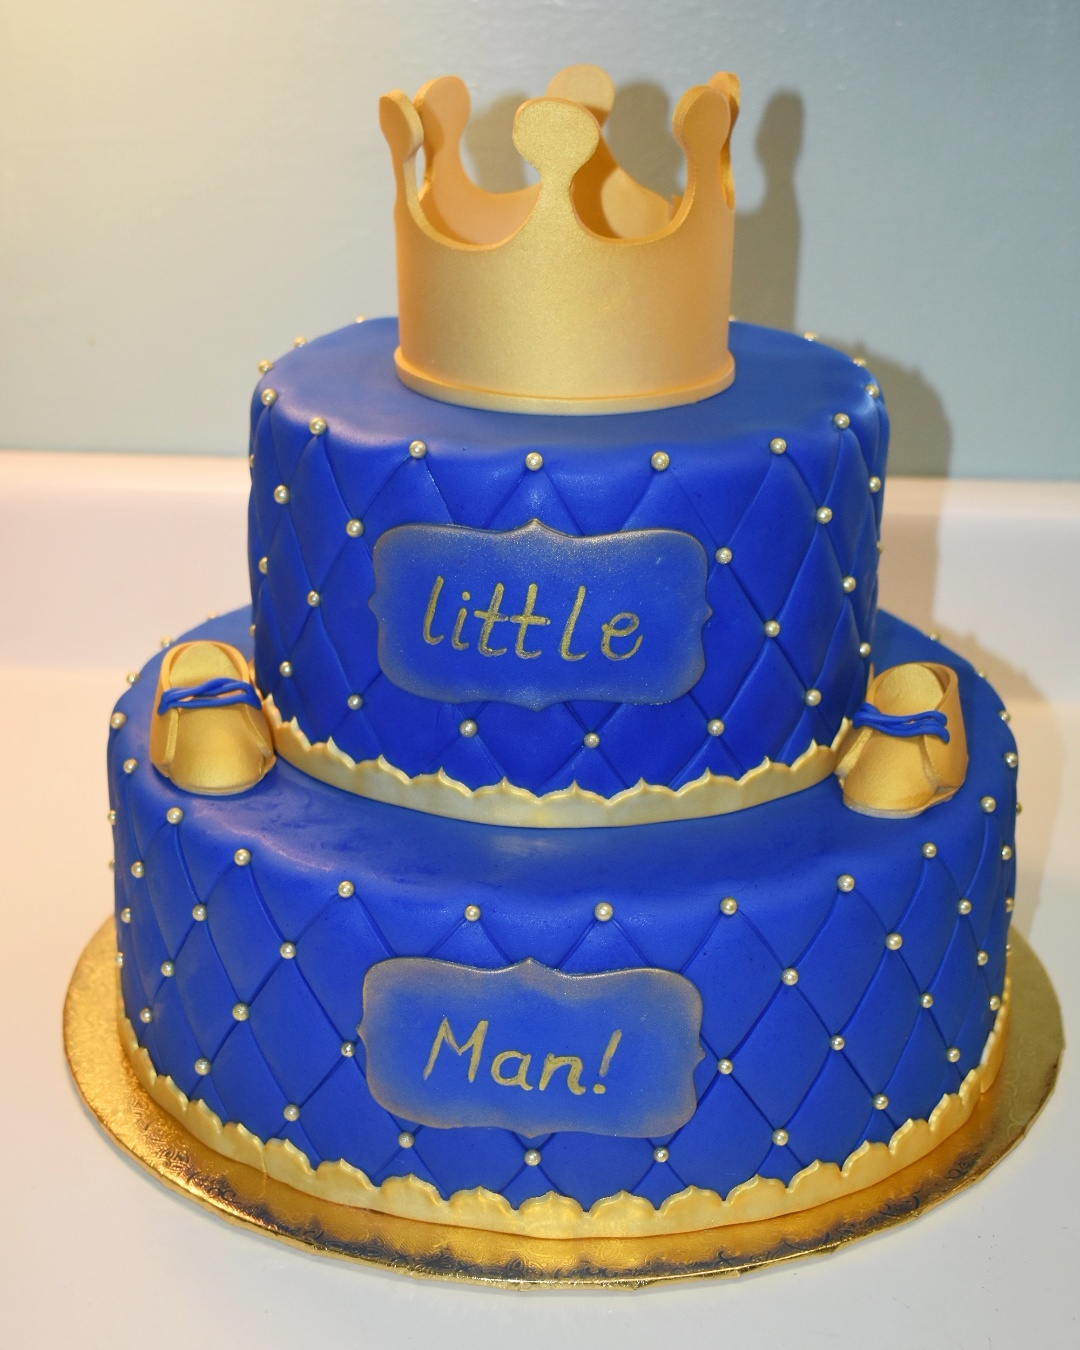 Little Prince Cake Ideas Blue White